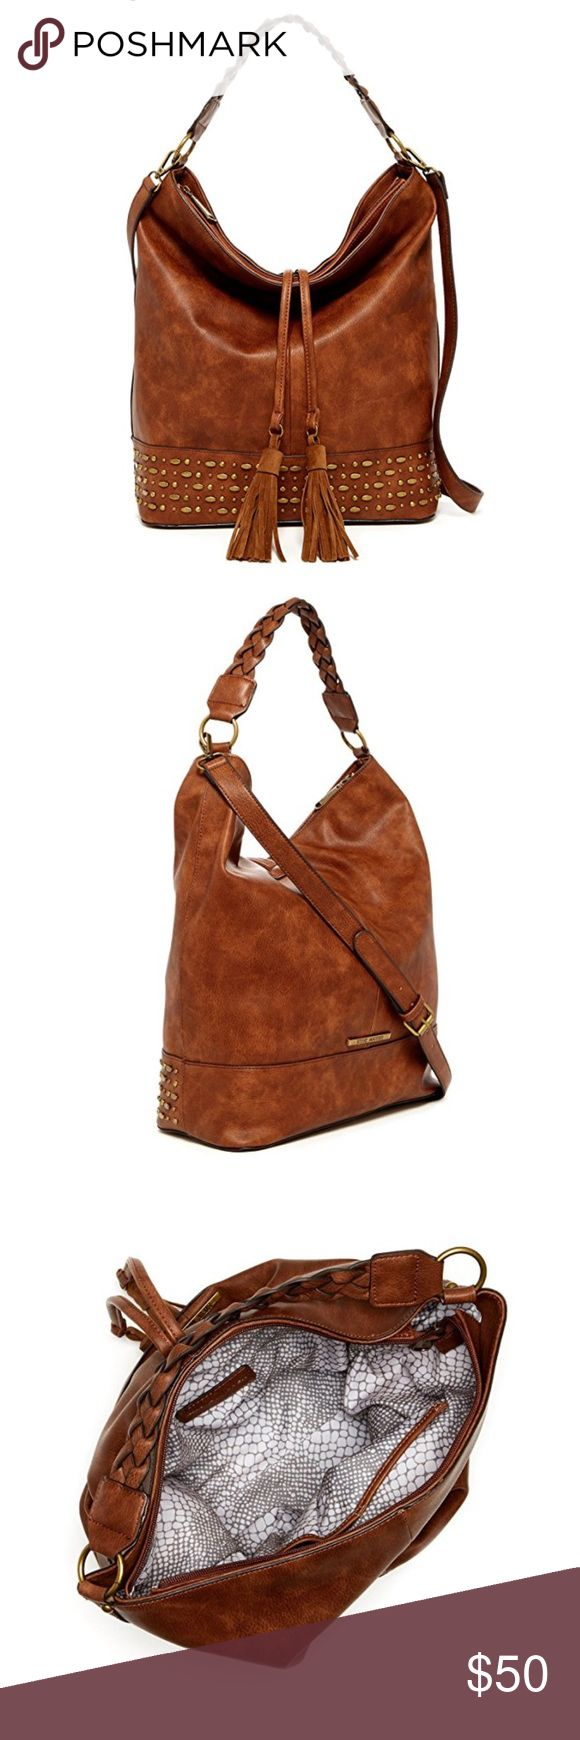 Steve Madden Hobo Handbag Cognac color, Like New...... only carried twice! VERY SPACIOUS, and easy to carry! This color is sold out everywhere! PRICE ABSOLUTELY FIRM Steve Madden Bags Hobos